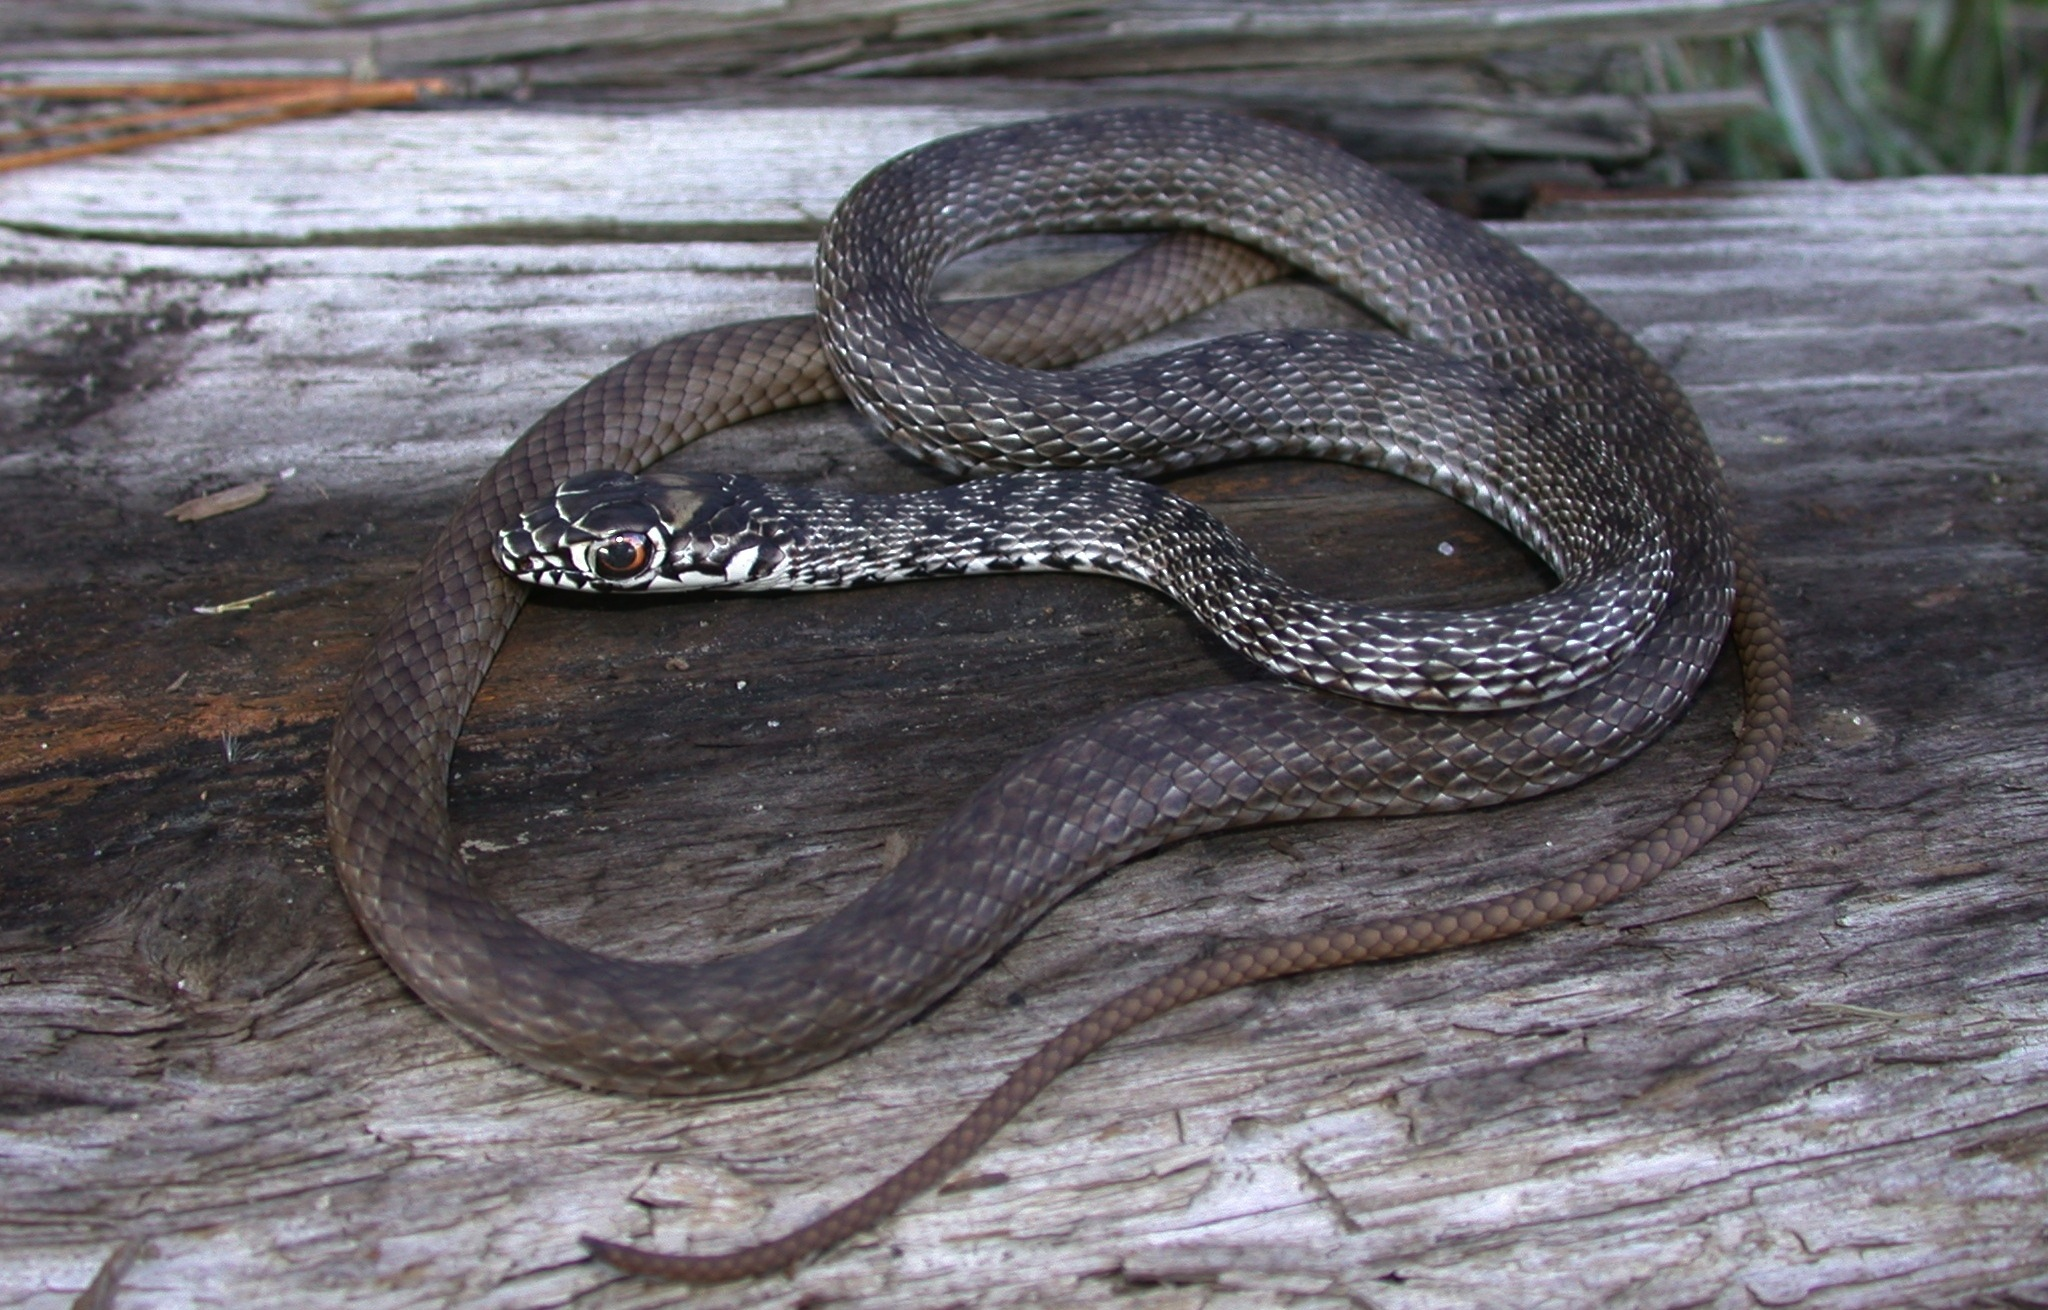 Juvenile coachwhip Photo by JD Willson